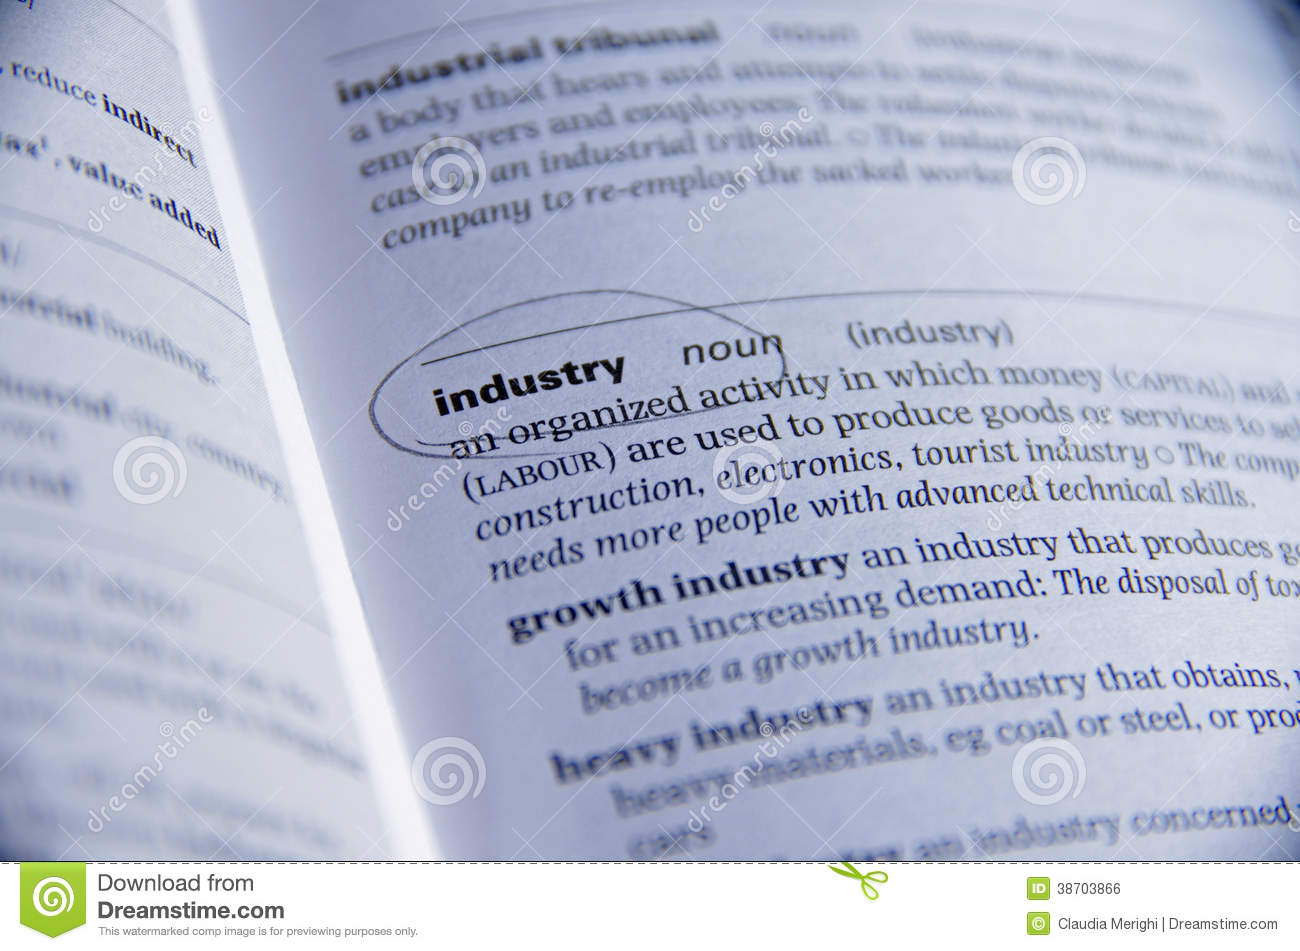 industry definition Industry is the production of goods or related services within an economy the major source of revenue of a group or company is the indicator of its relevant industry.